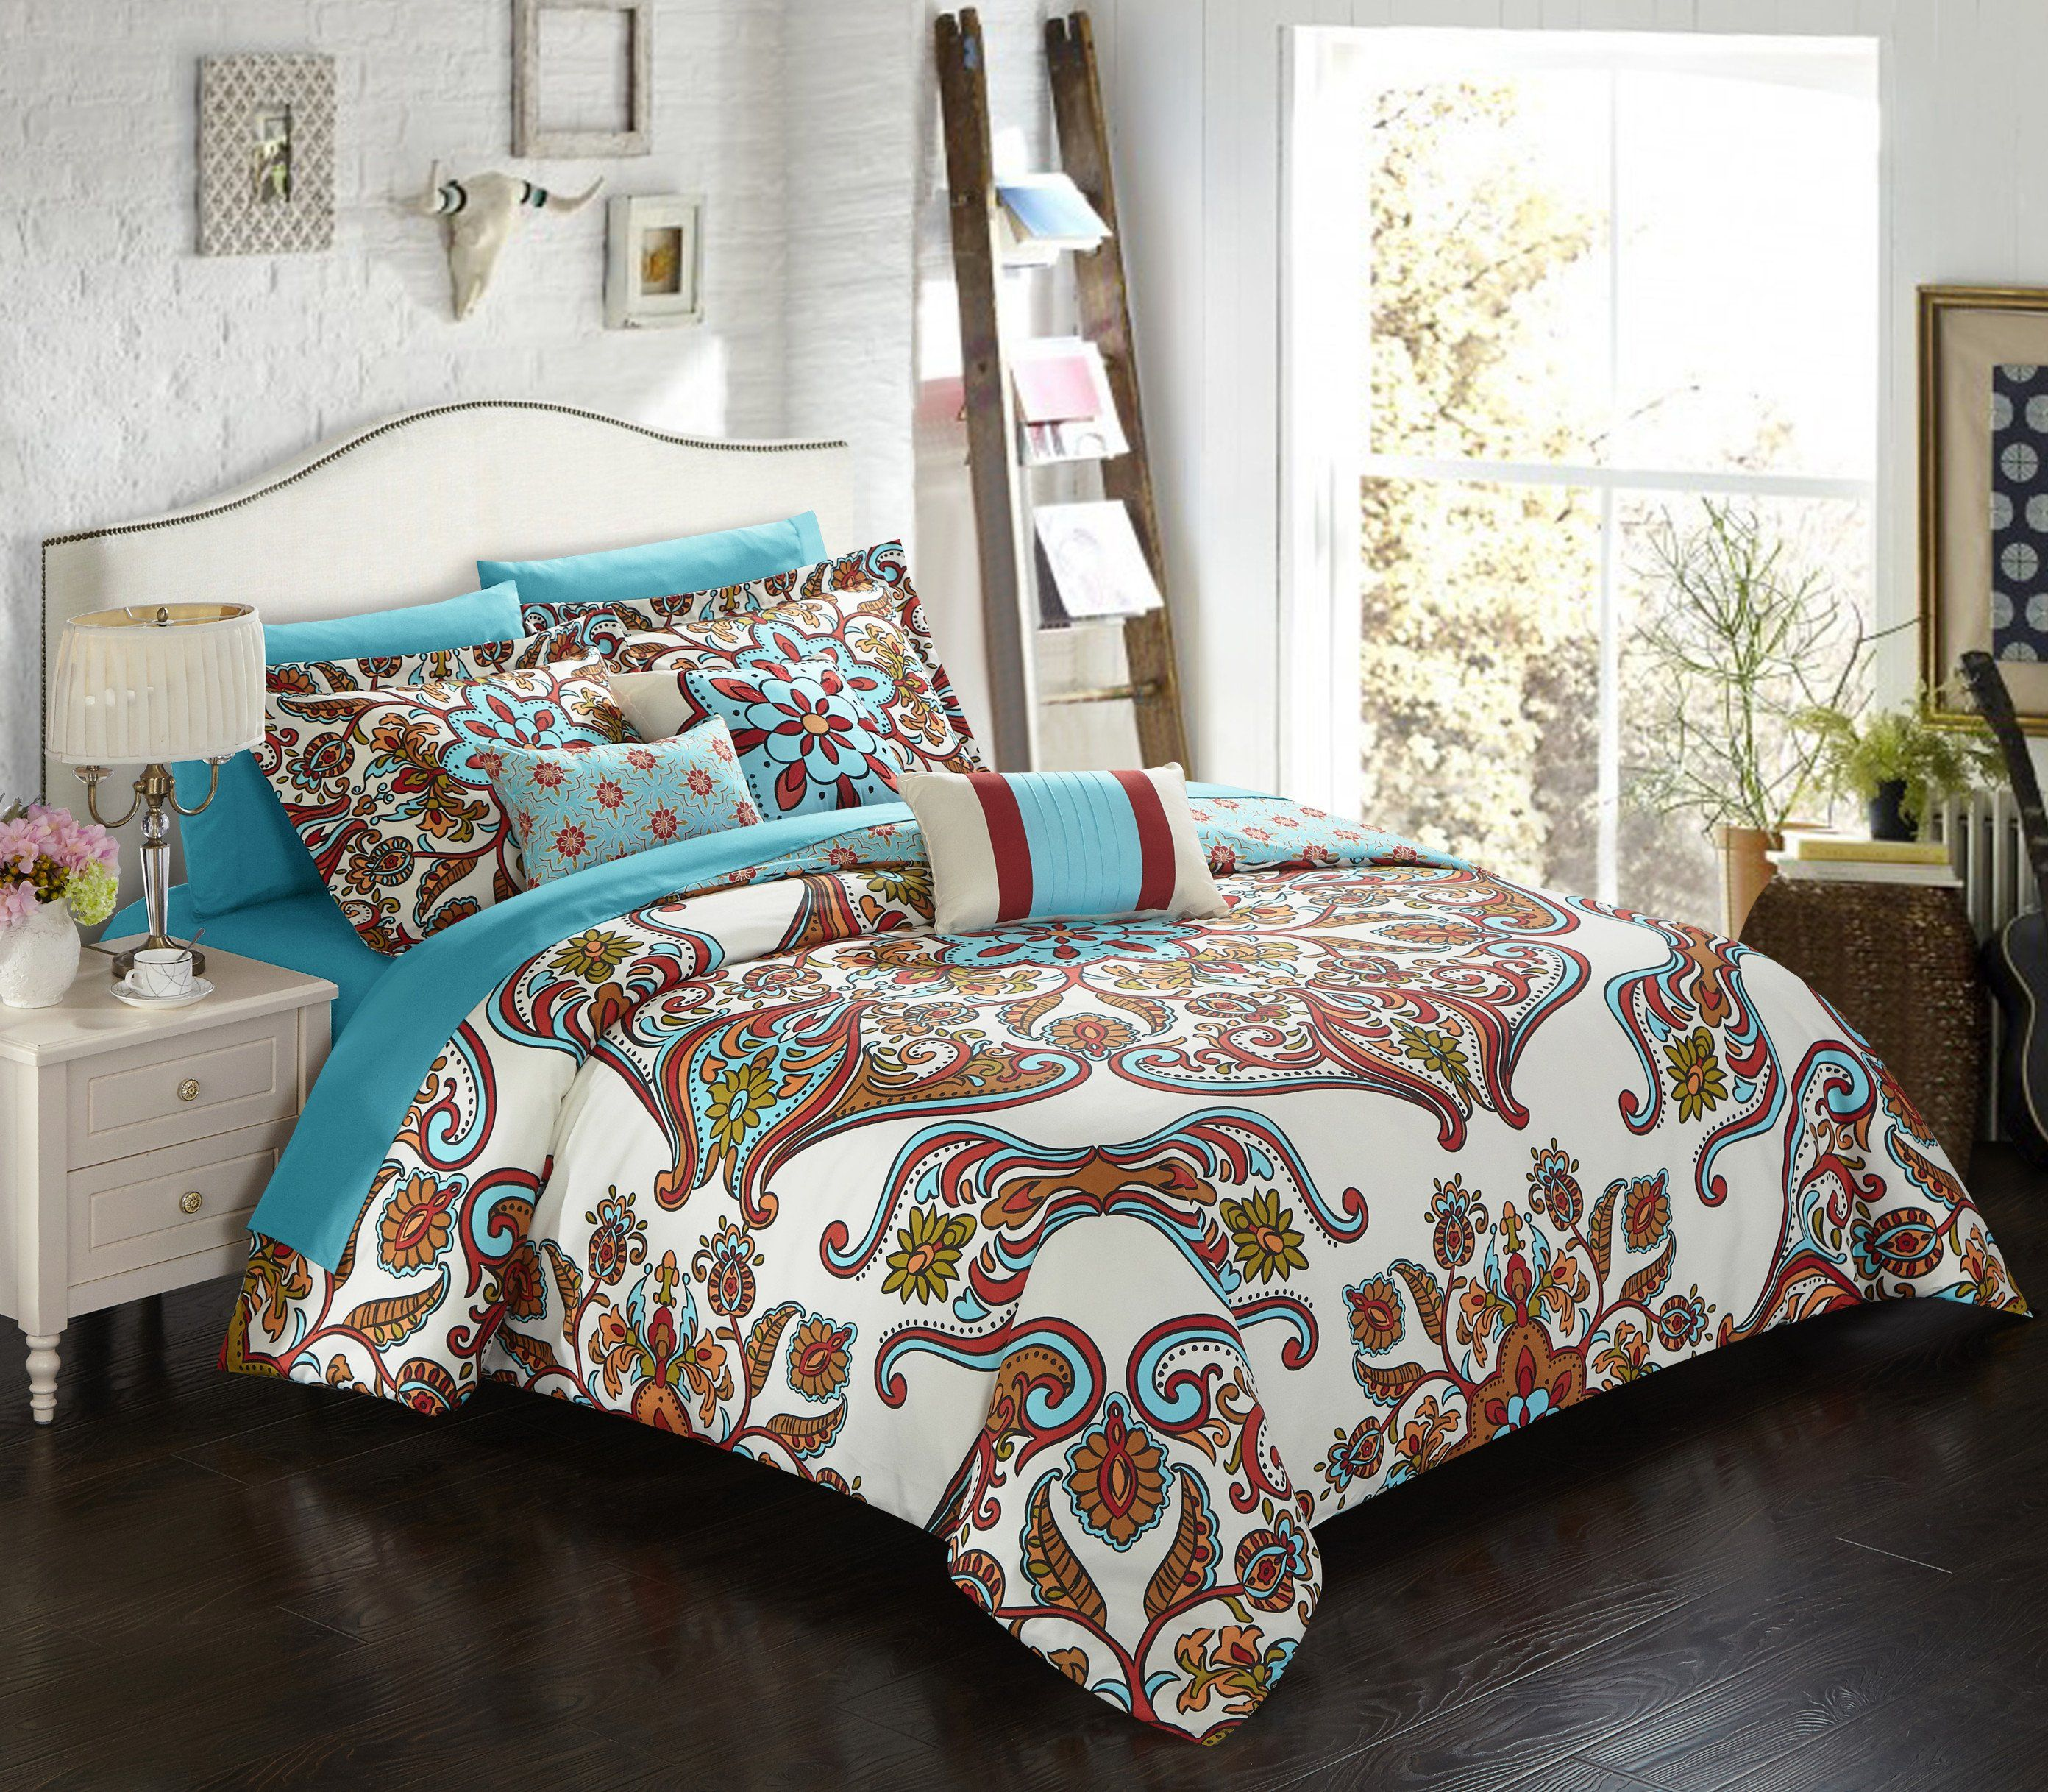 black home pattern ideas cover queen decor table white duvet dining bohemian gypsy set inspiring you colorful quilt junk bedding comforter make bedroom bag and amazon collection that mandala will style by in boho design covers full